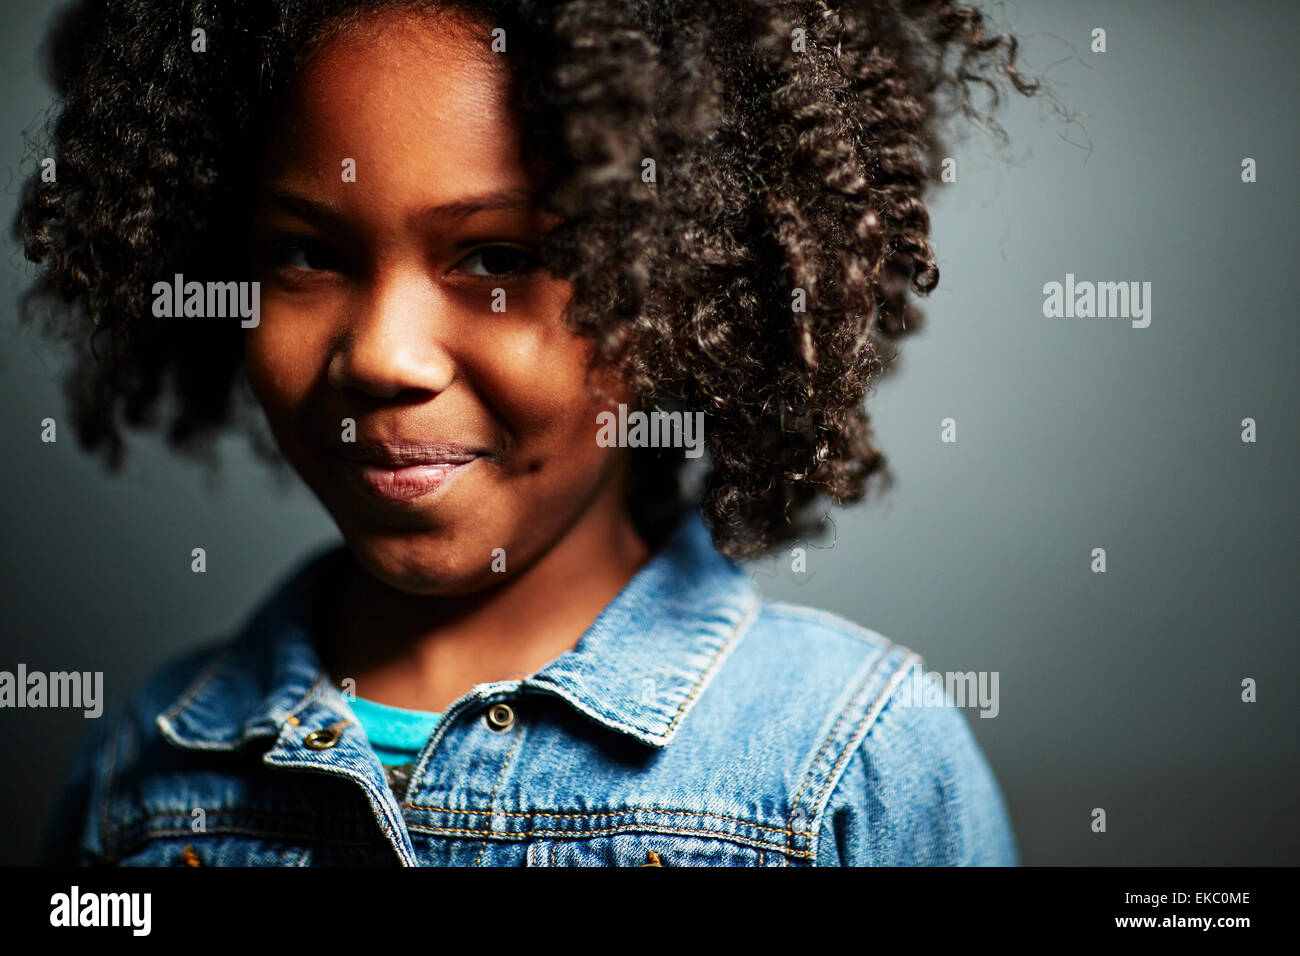 Girl with afro, smiling - Stock Image